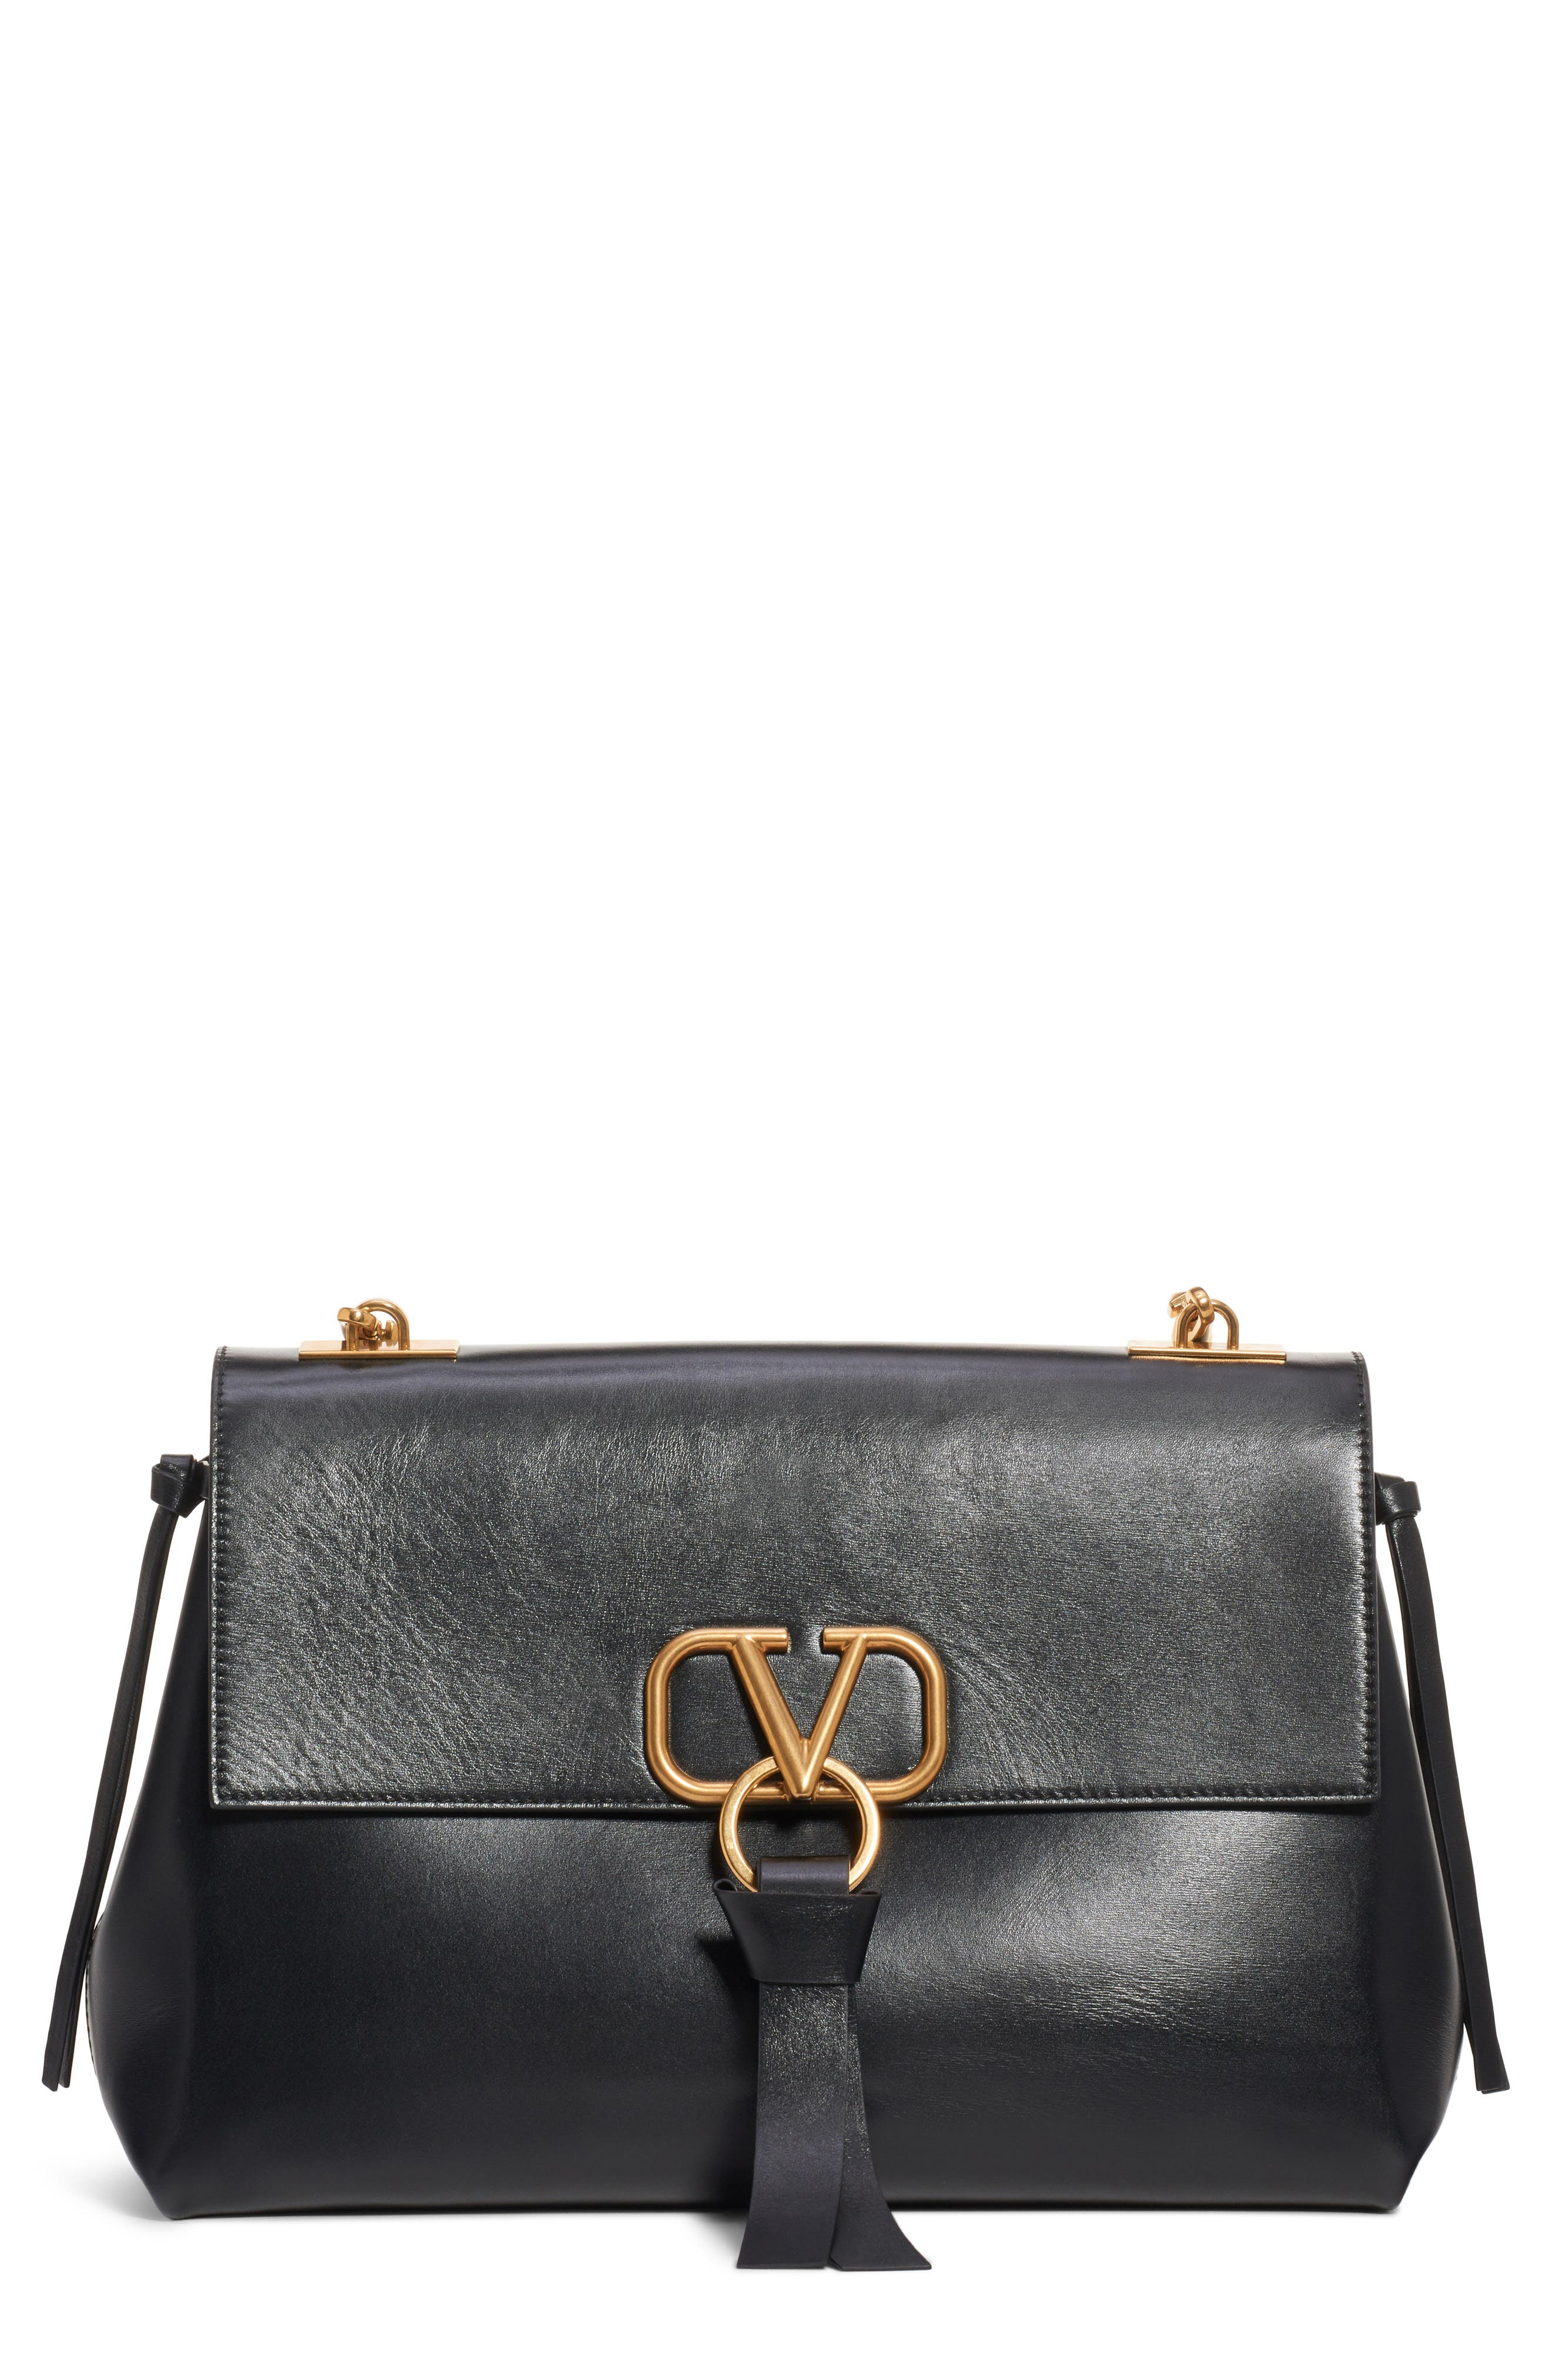 Medium Vee Ring Leather Shoulder Bag,                             Main thumbnail 1, color,                             NERO